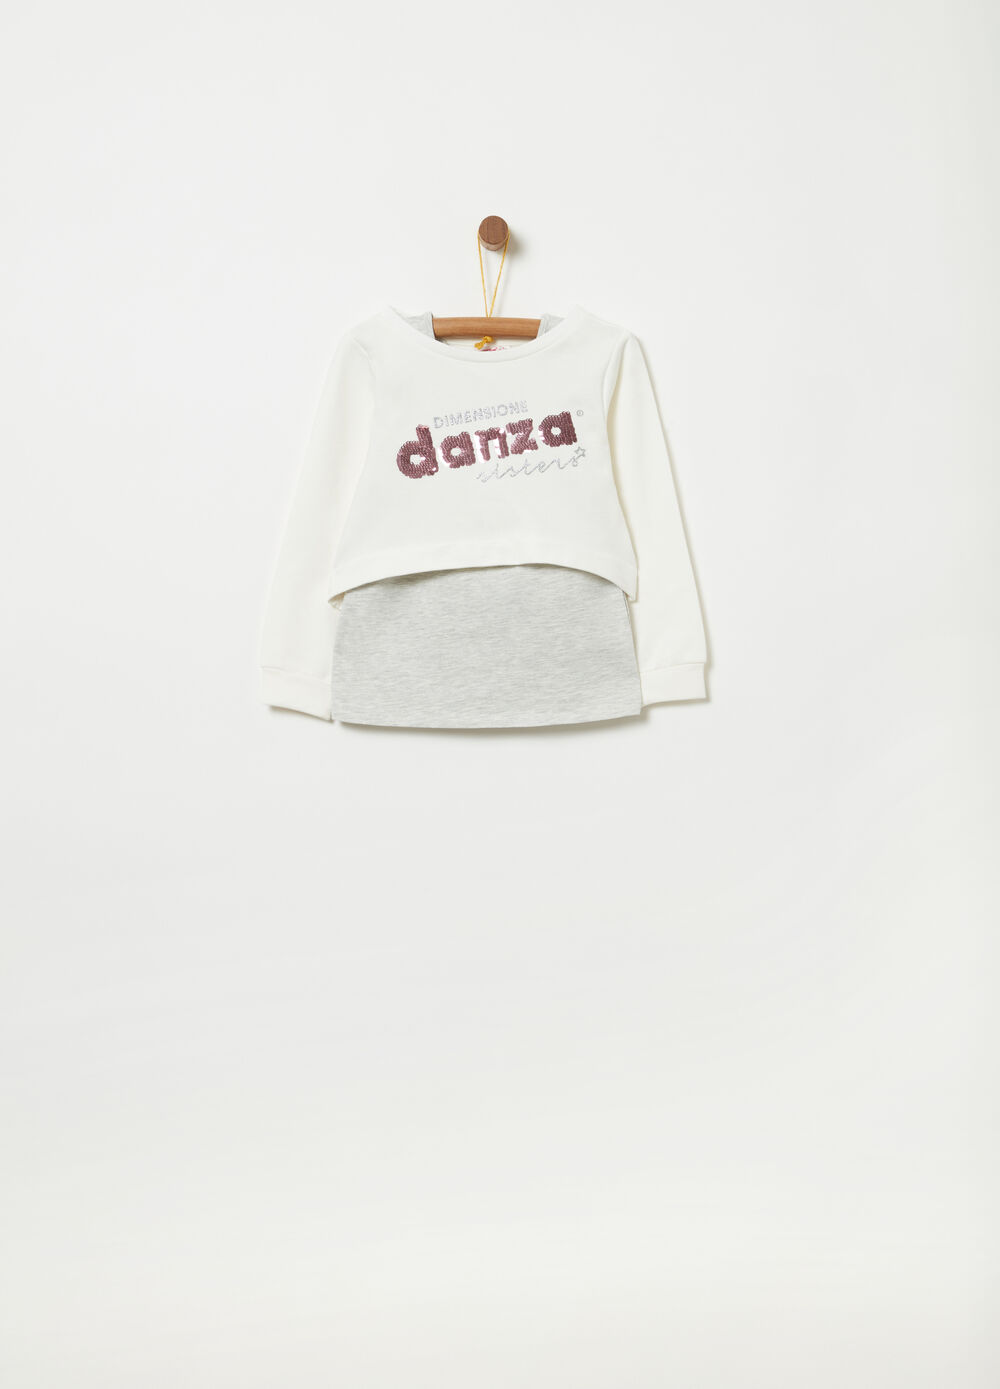 Dimensione Danza tracksuit with sweatshirt and top